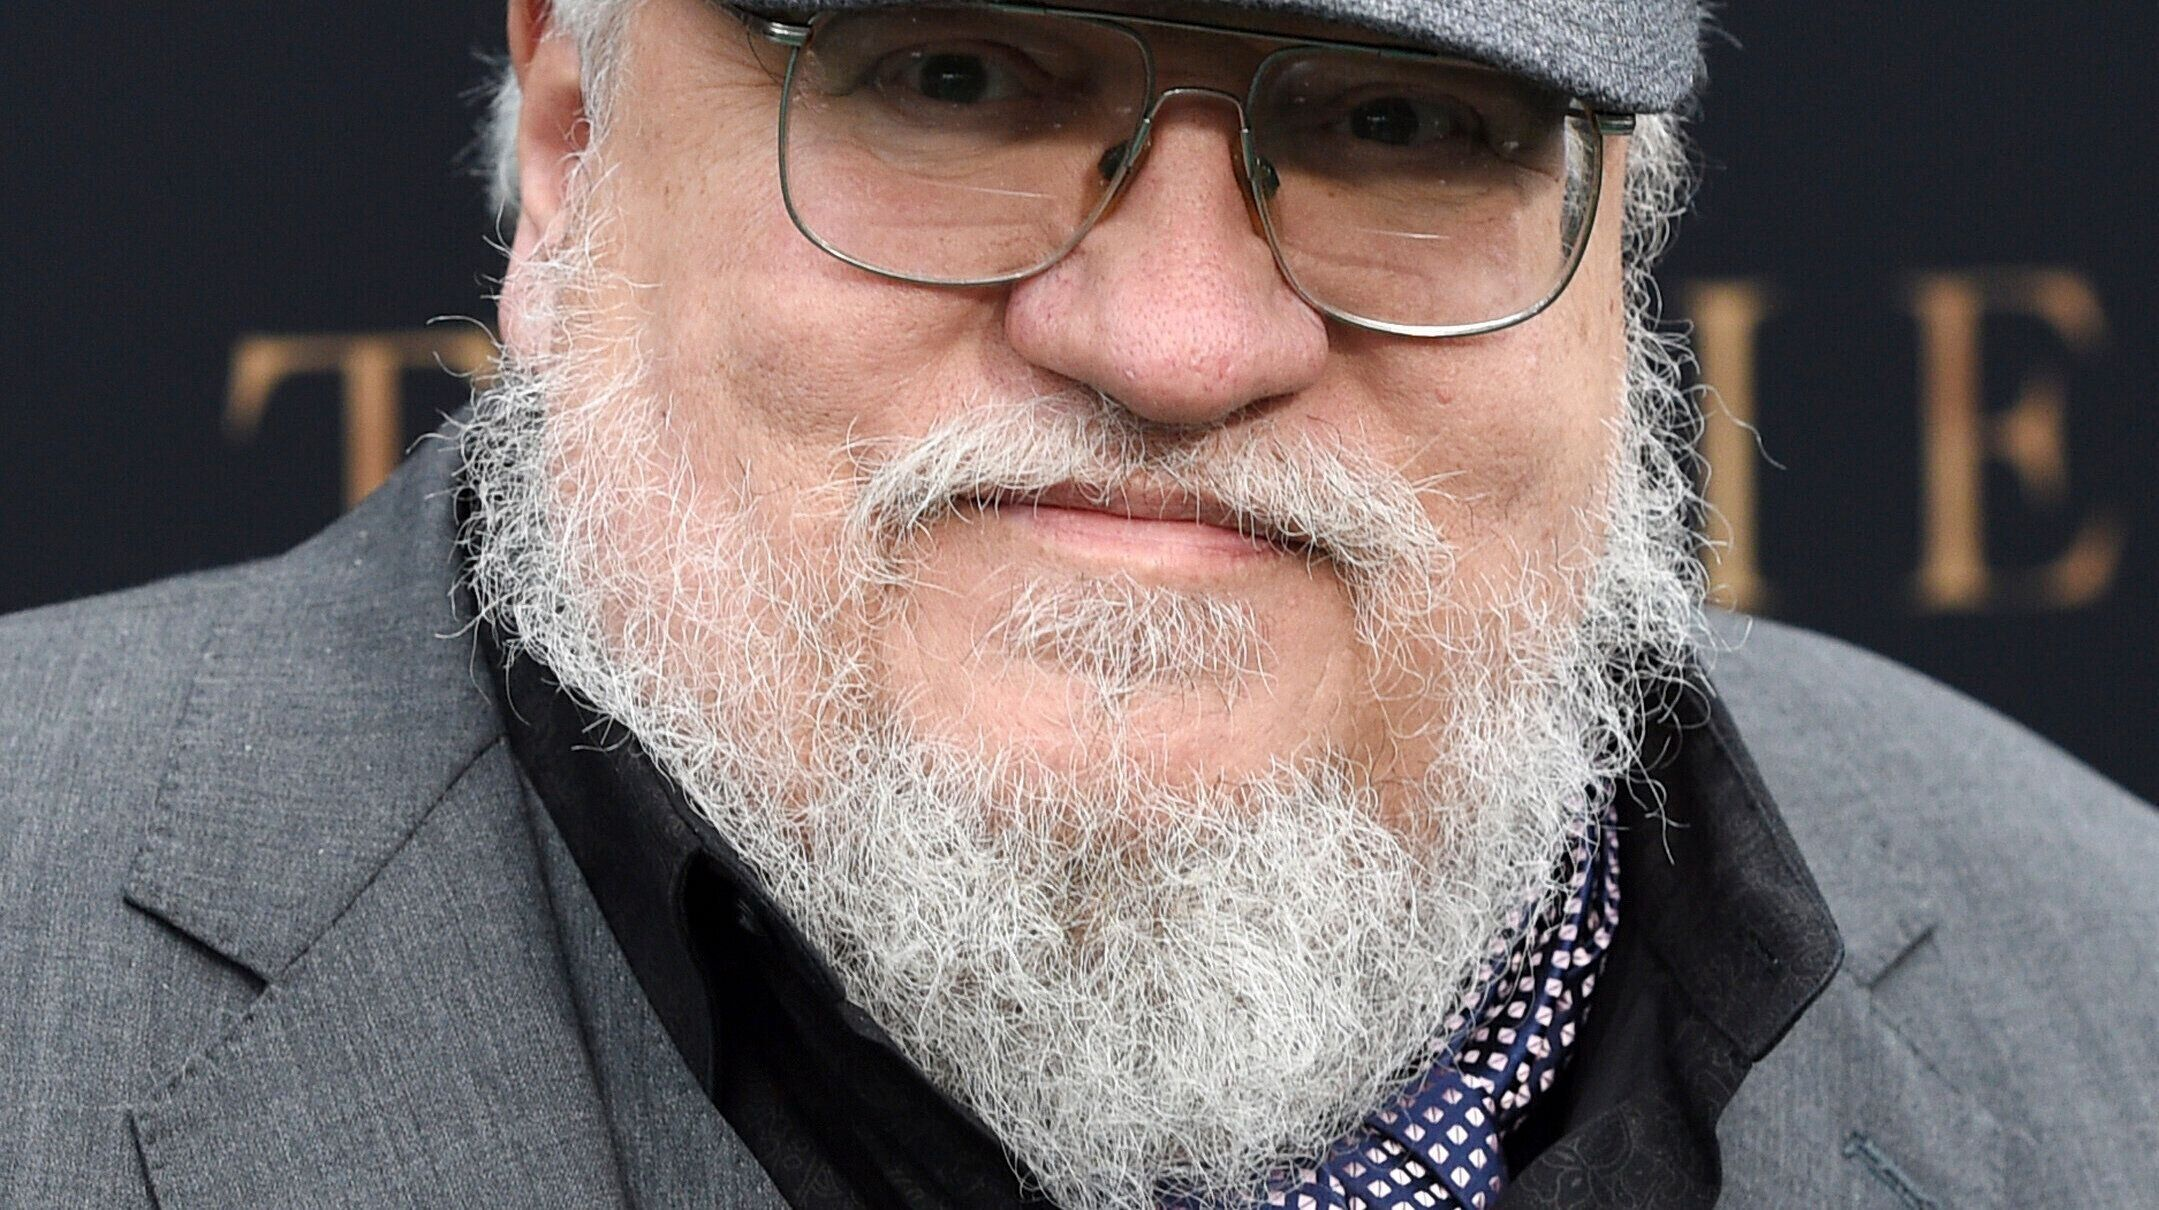 George R.R. Martin Reminds 'Game Of Thrones' Fans The Books Will Be